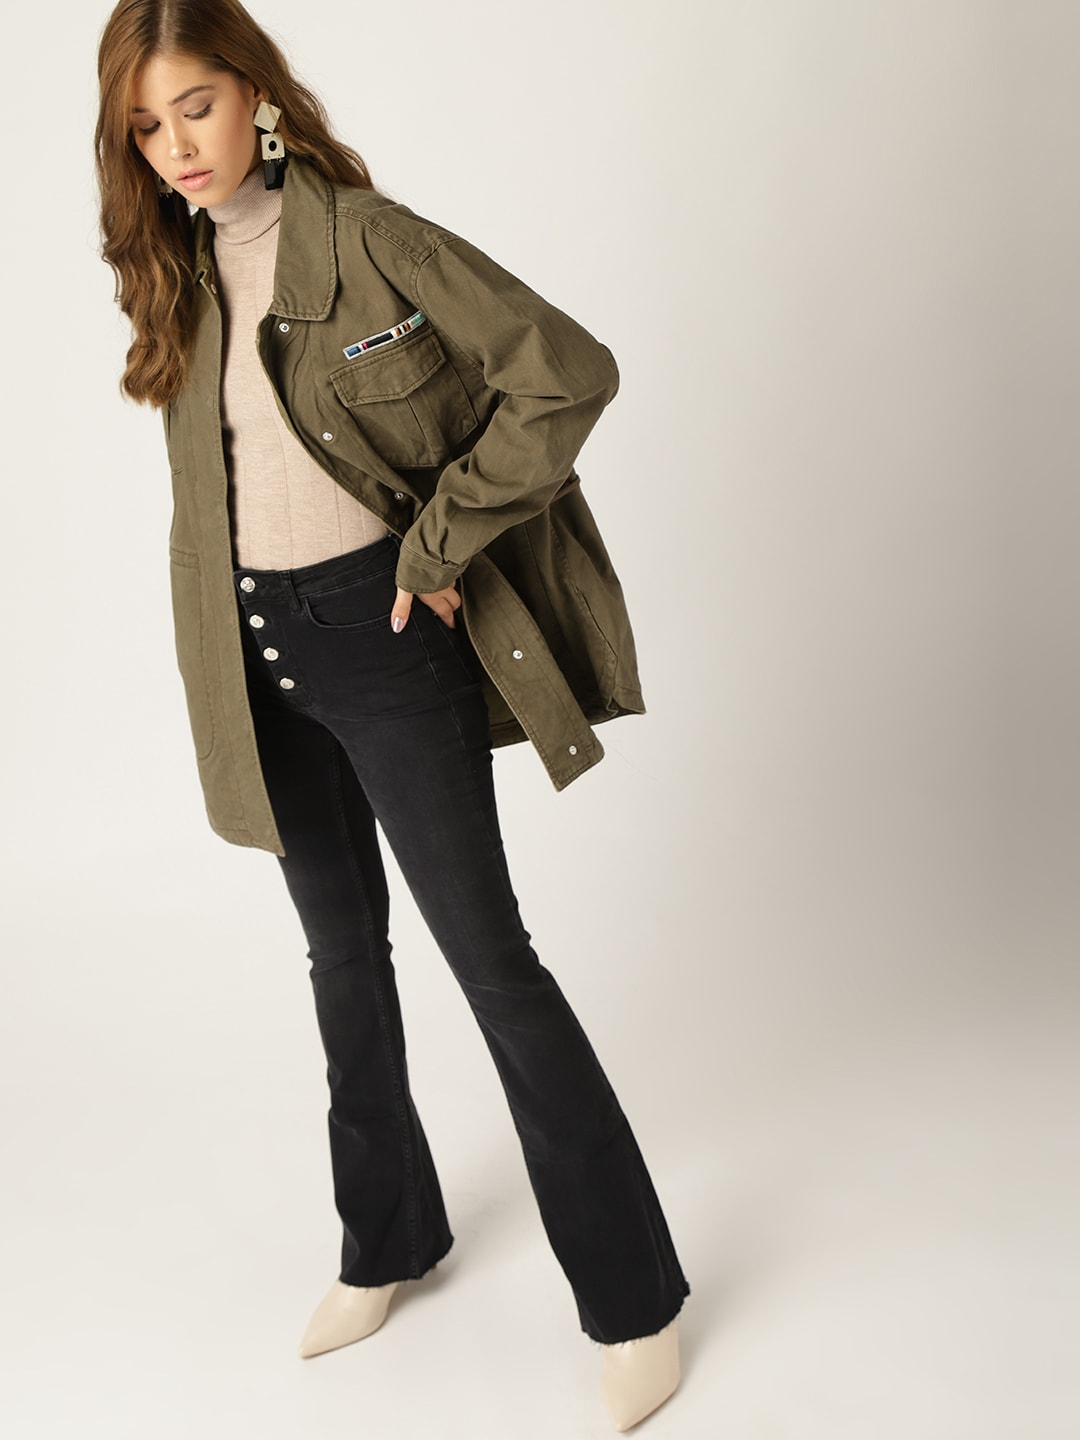 751bb86dba8b MANGO Jackets - Buy Jacket from MANGO Online in India